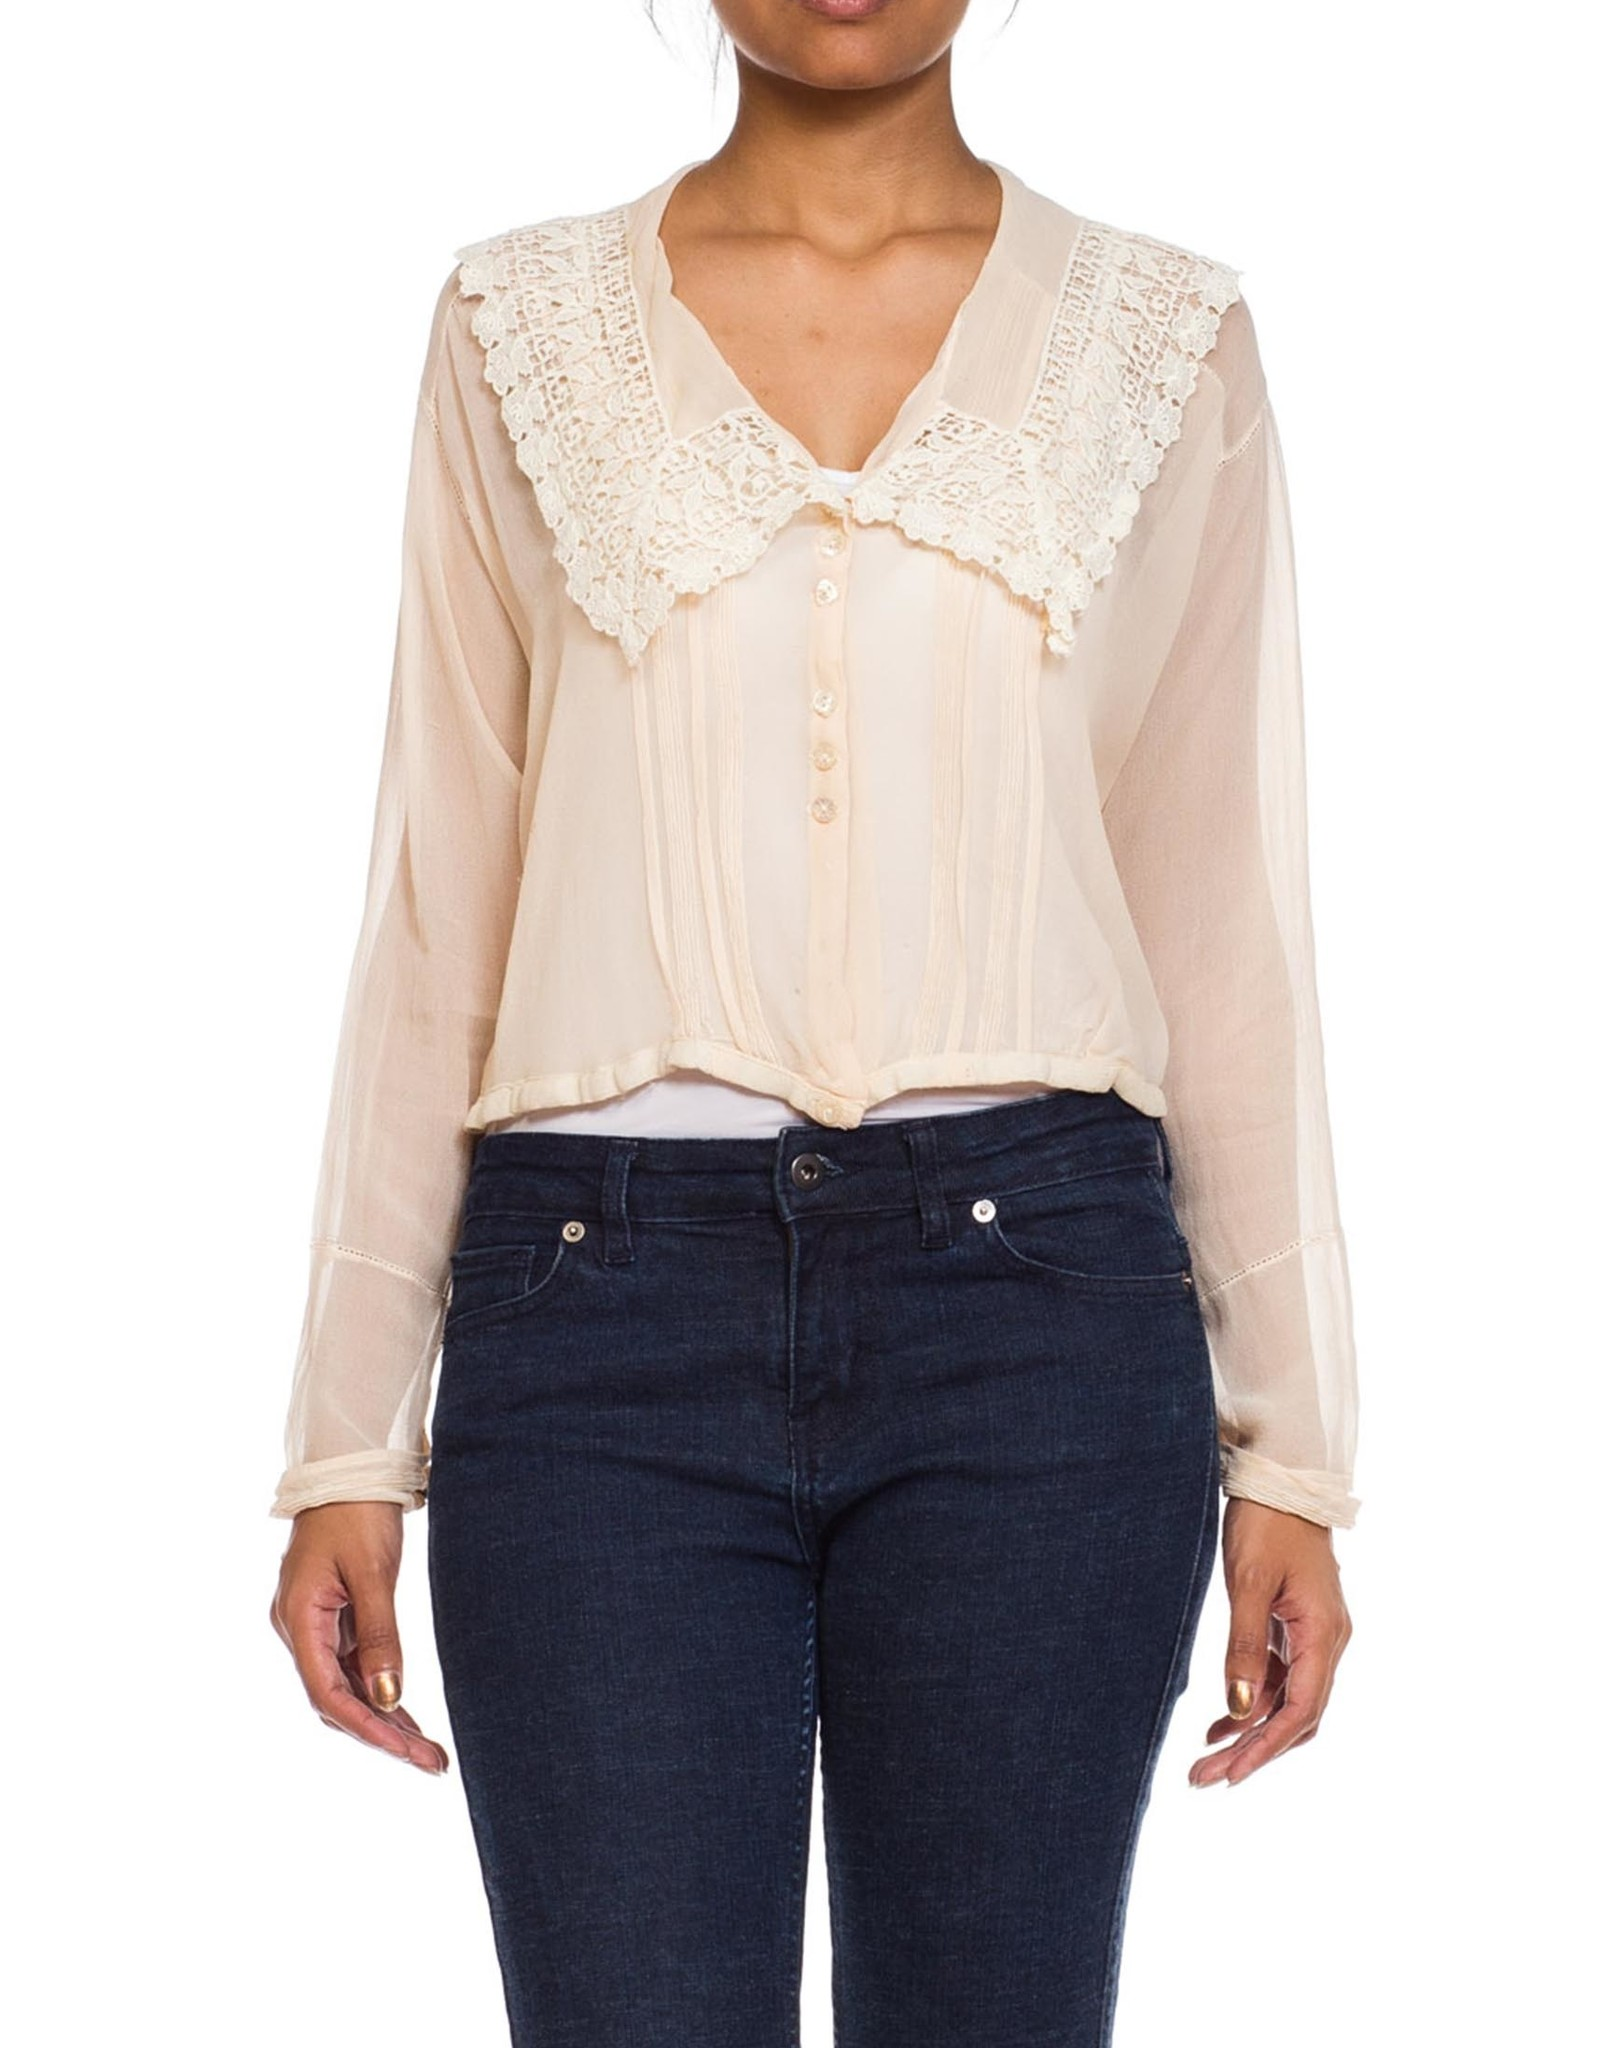 Wyld Blue Vintage Blush Sheer Silk Chiffon with Lace Collar Blouse (Antique)